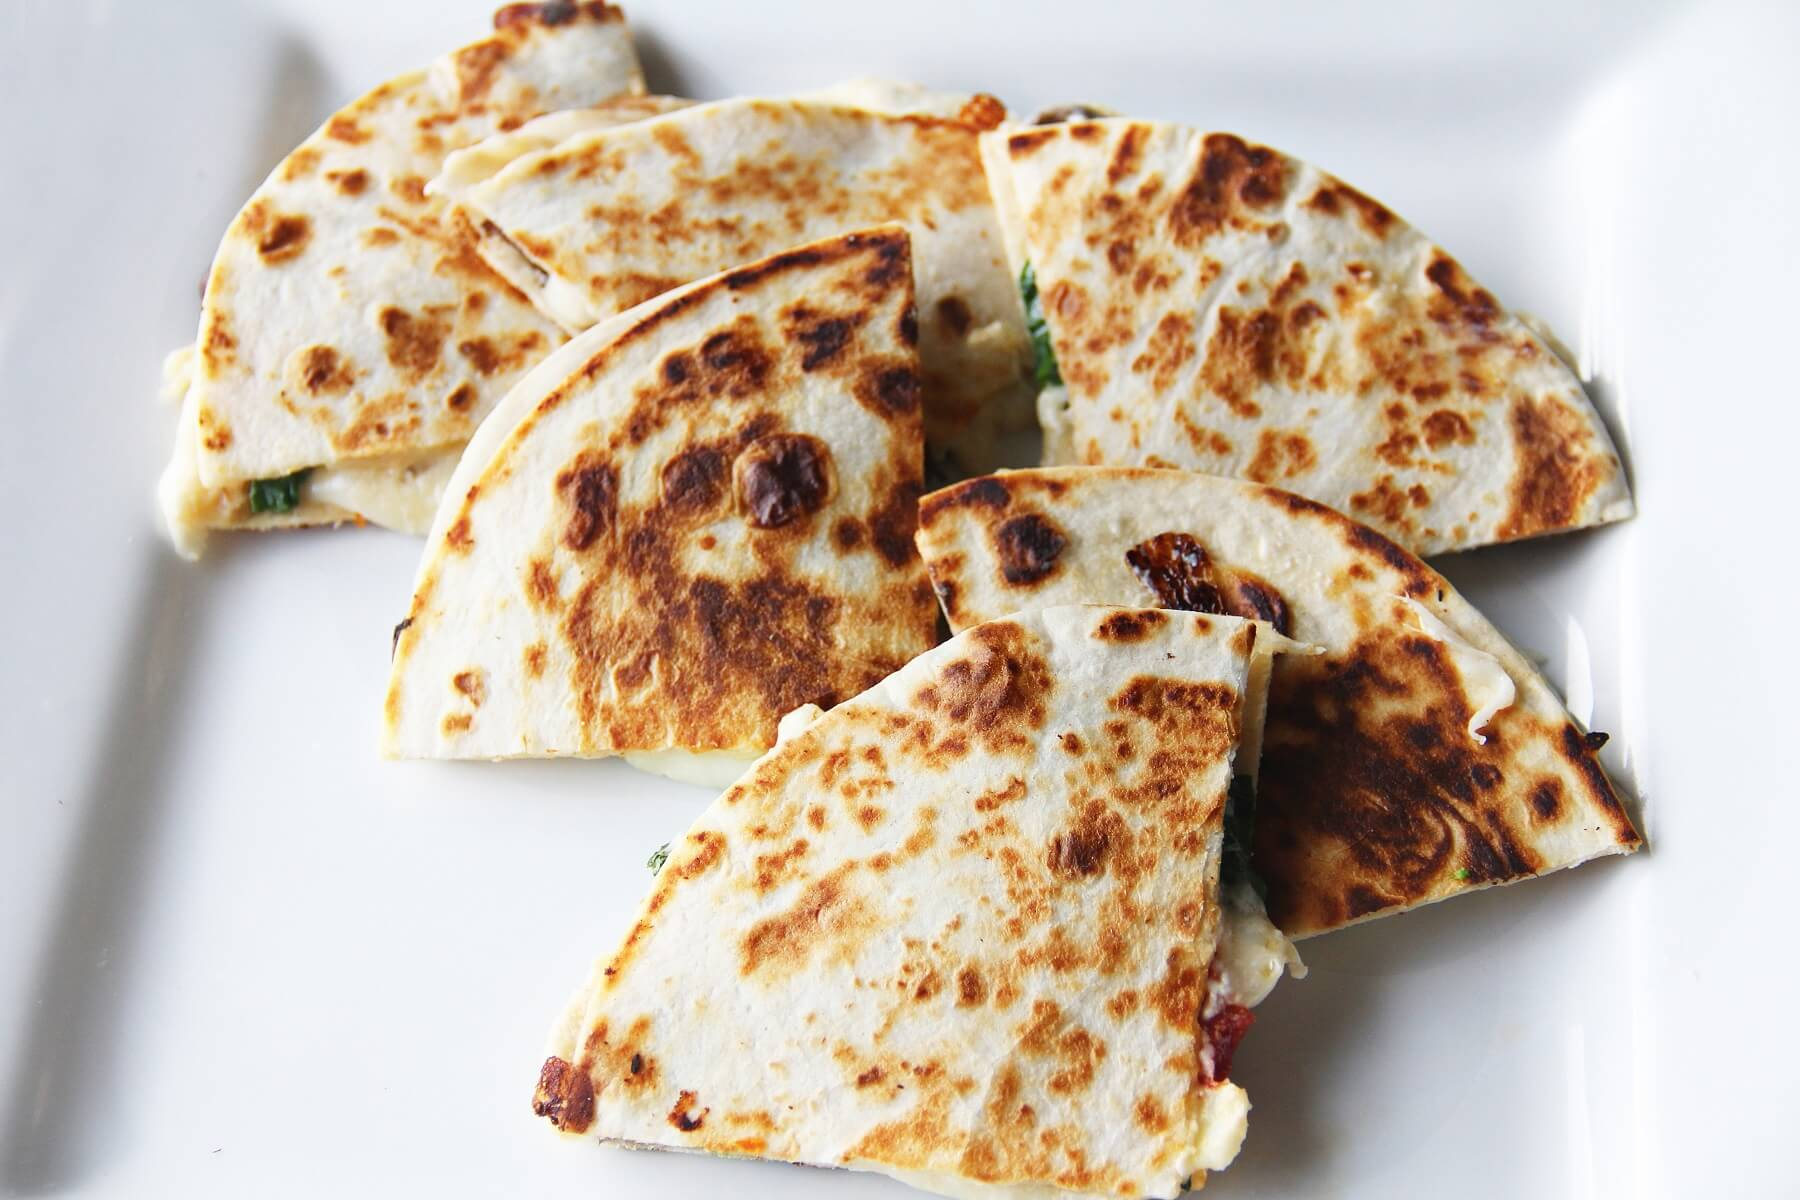 Spinach and Goats' Cheese Picnic Quesadillas Recipe